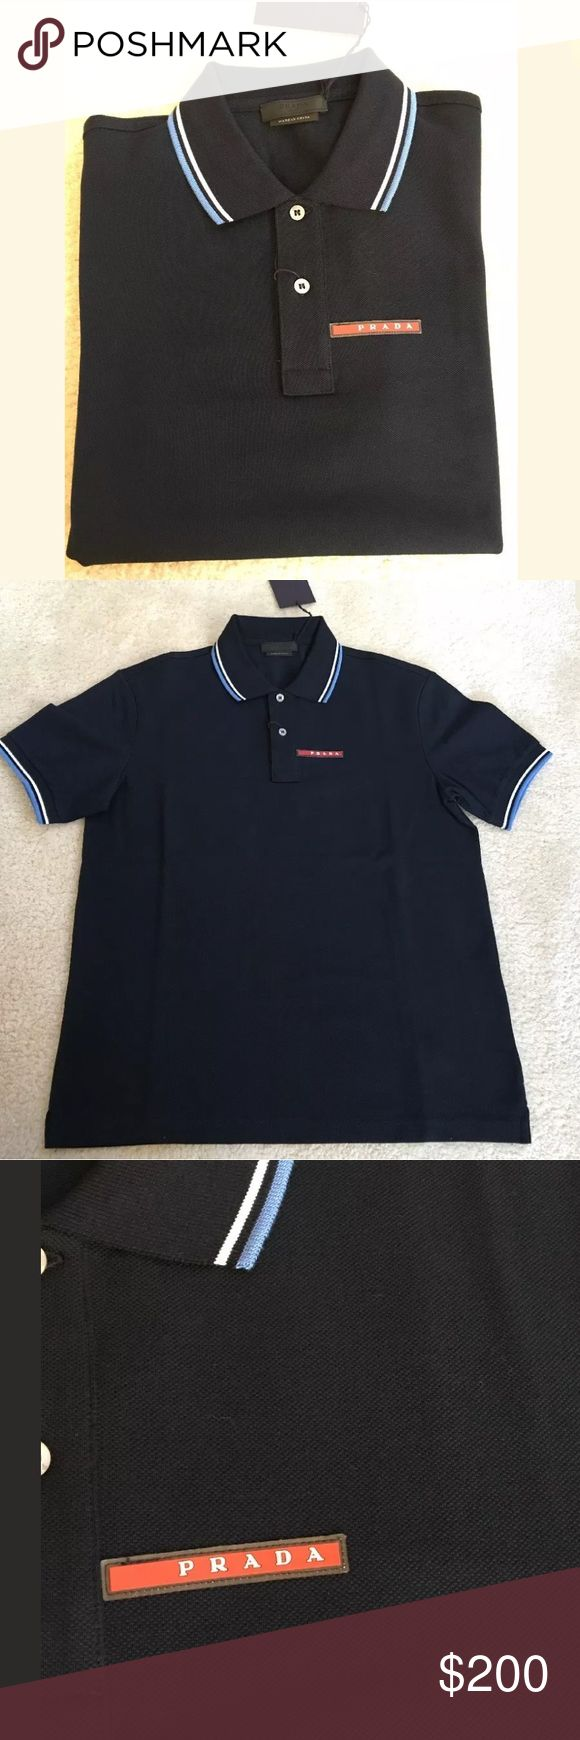 PRADA MEN'S BLUE COTTON POLO SHIRT XL PRADA MEN'S BLUE COTTON SIGNATURE STRIPE POLO SHIRT    100% authentic. Retail price $295.00    Size: XL Prada Shirts Polos